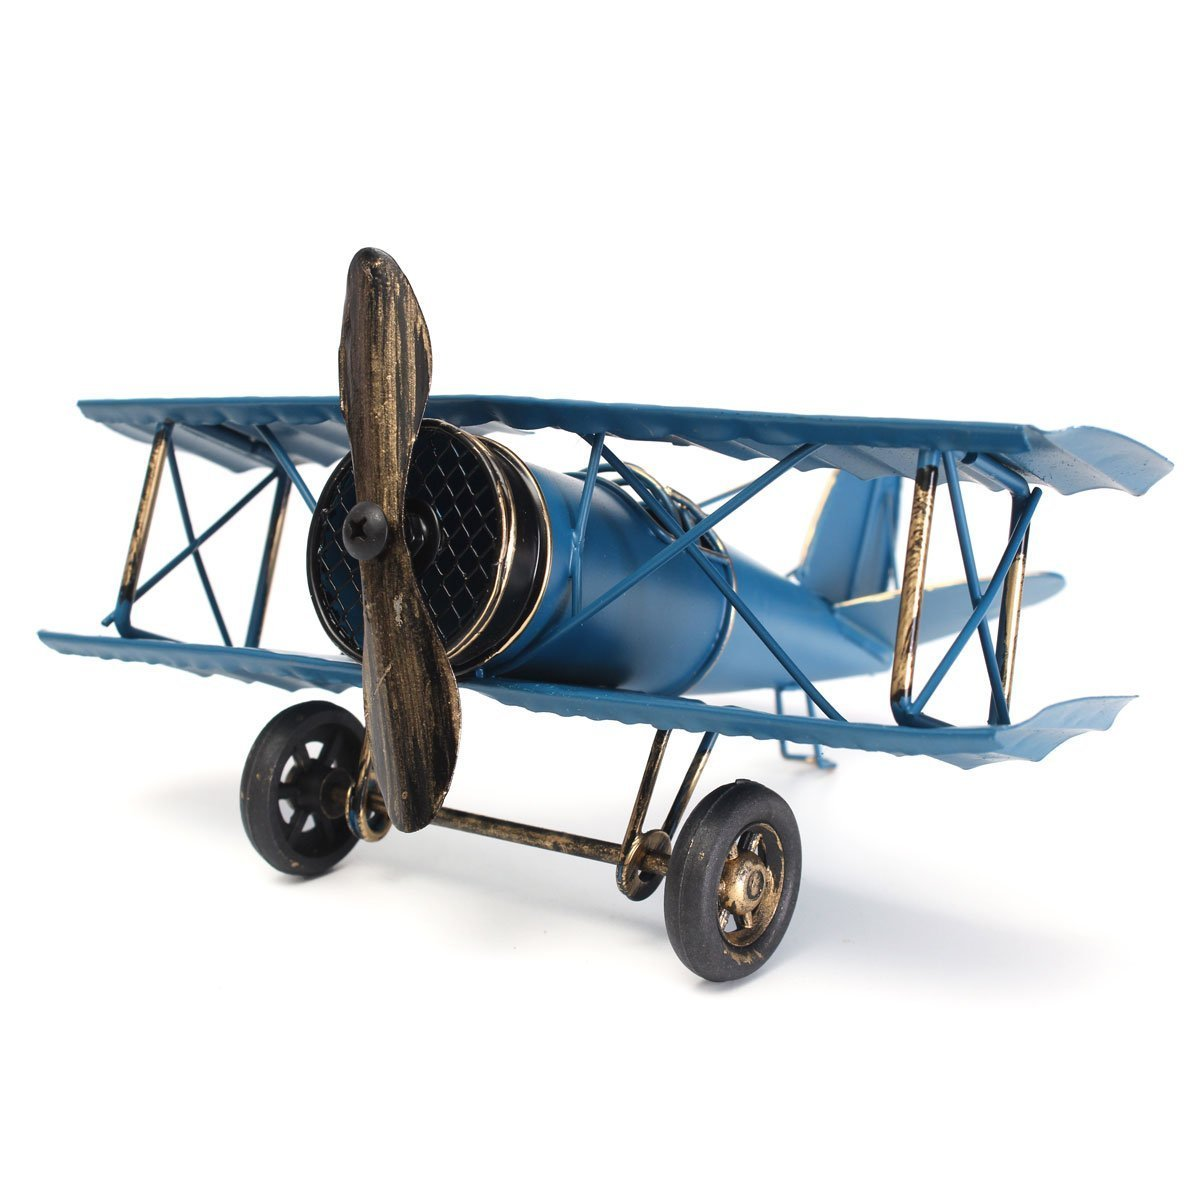 Large 8.5'' Retro Airplane Aircraft Model,Home Decor Ornament Toy,Home Office Desktop Decoration, Retro World War I German wings Model,ww1 aircraft Model (Blue)